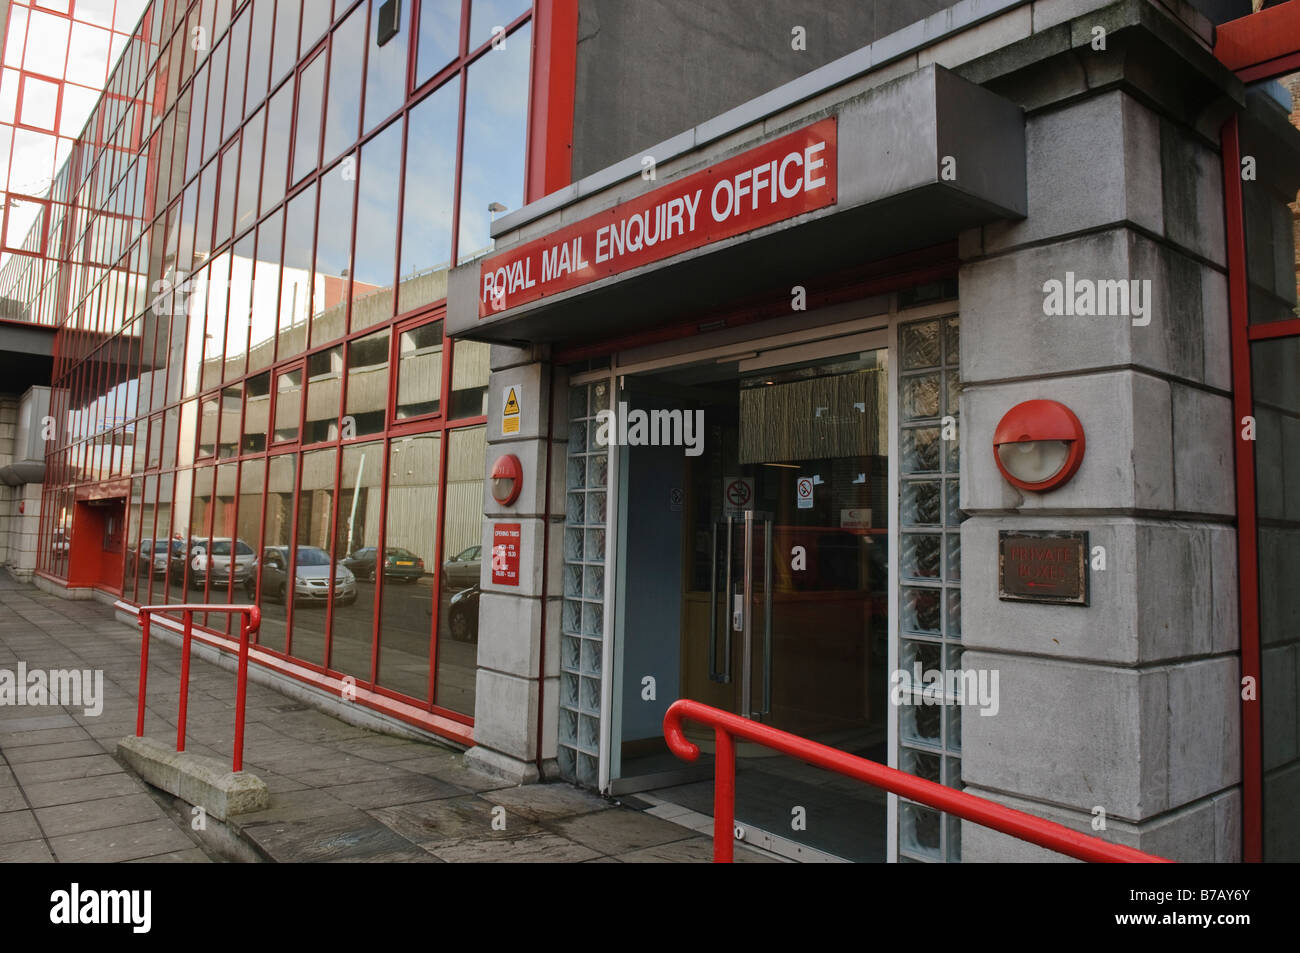 Royal Mail Enquiry Office, Belfast - Stock Image